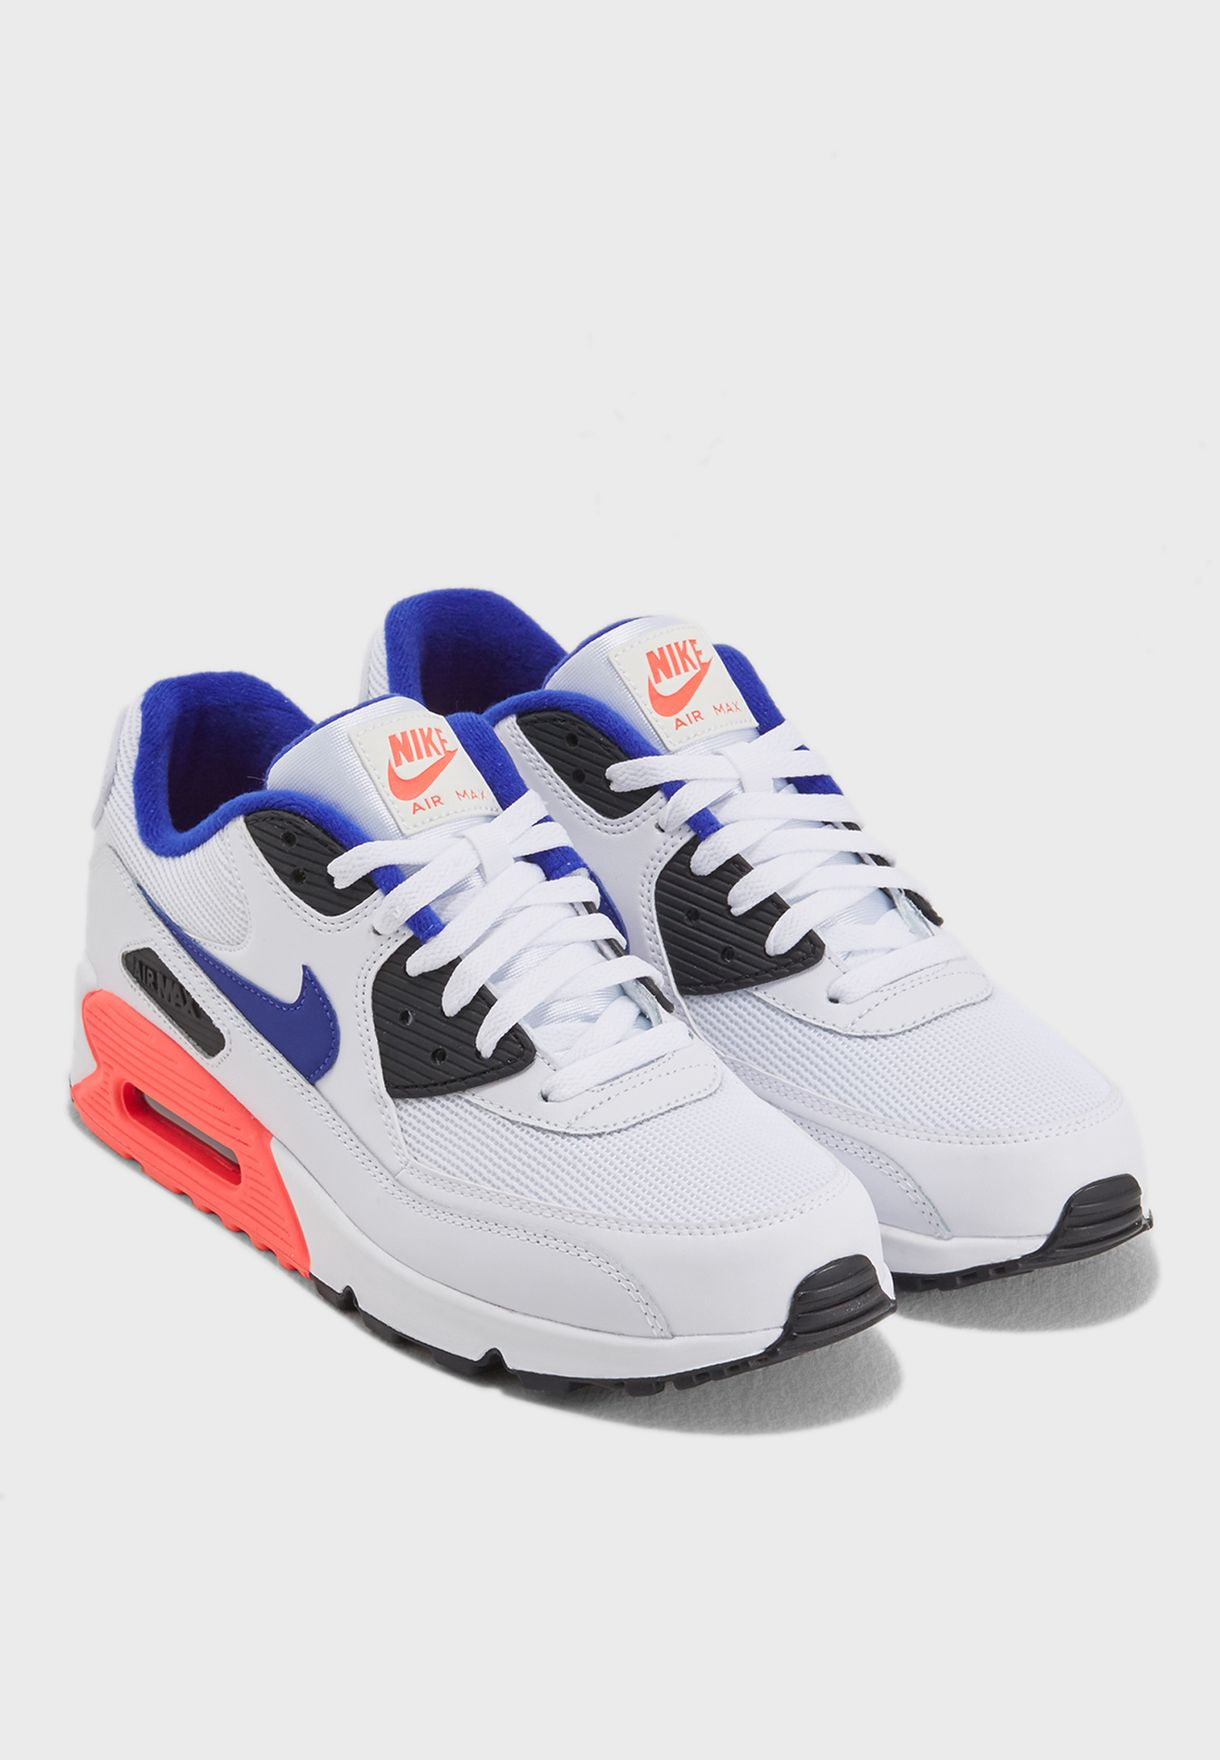 Nike Air Max 90 Essential Is As High As White Blue Zoom Running Shoes Size 537384 136 Best